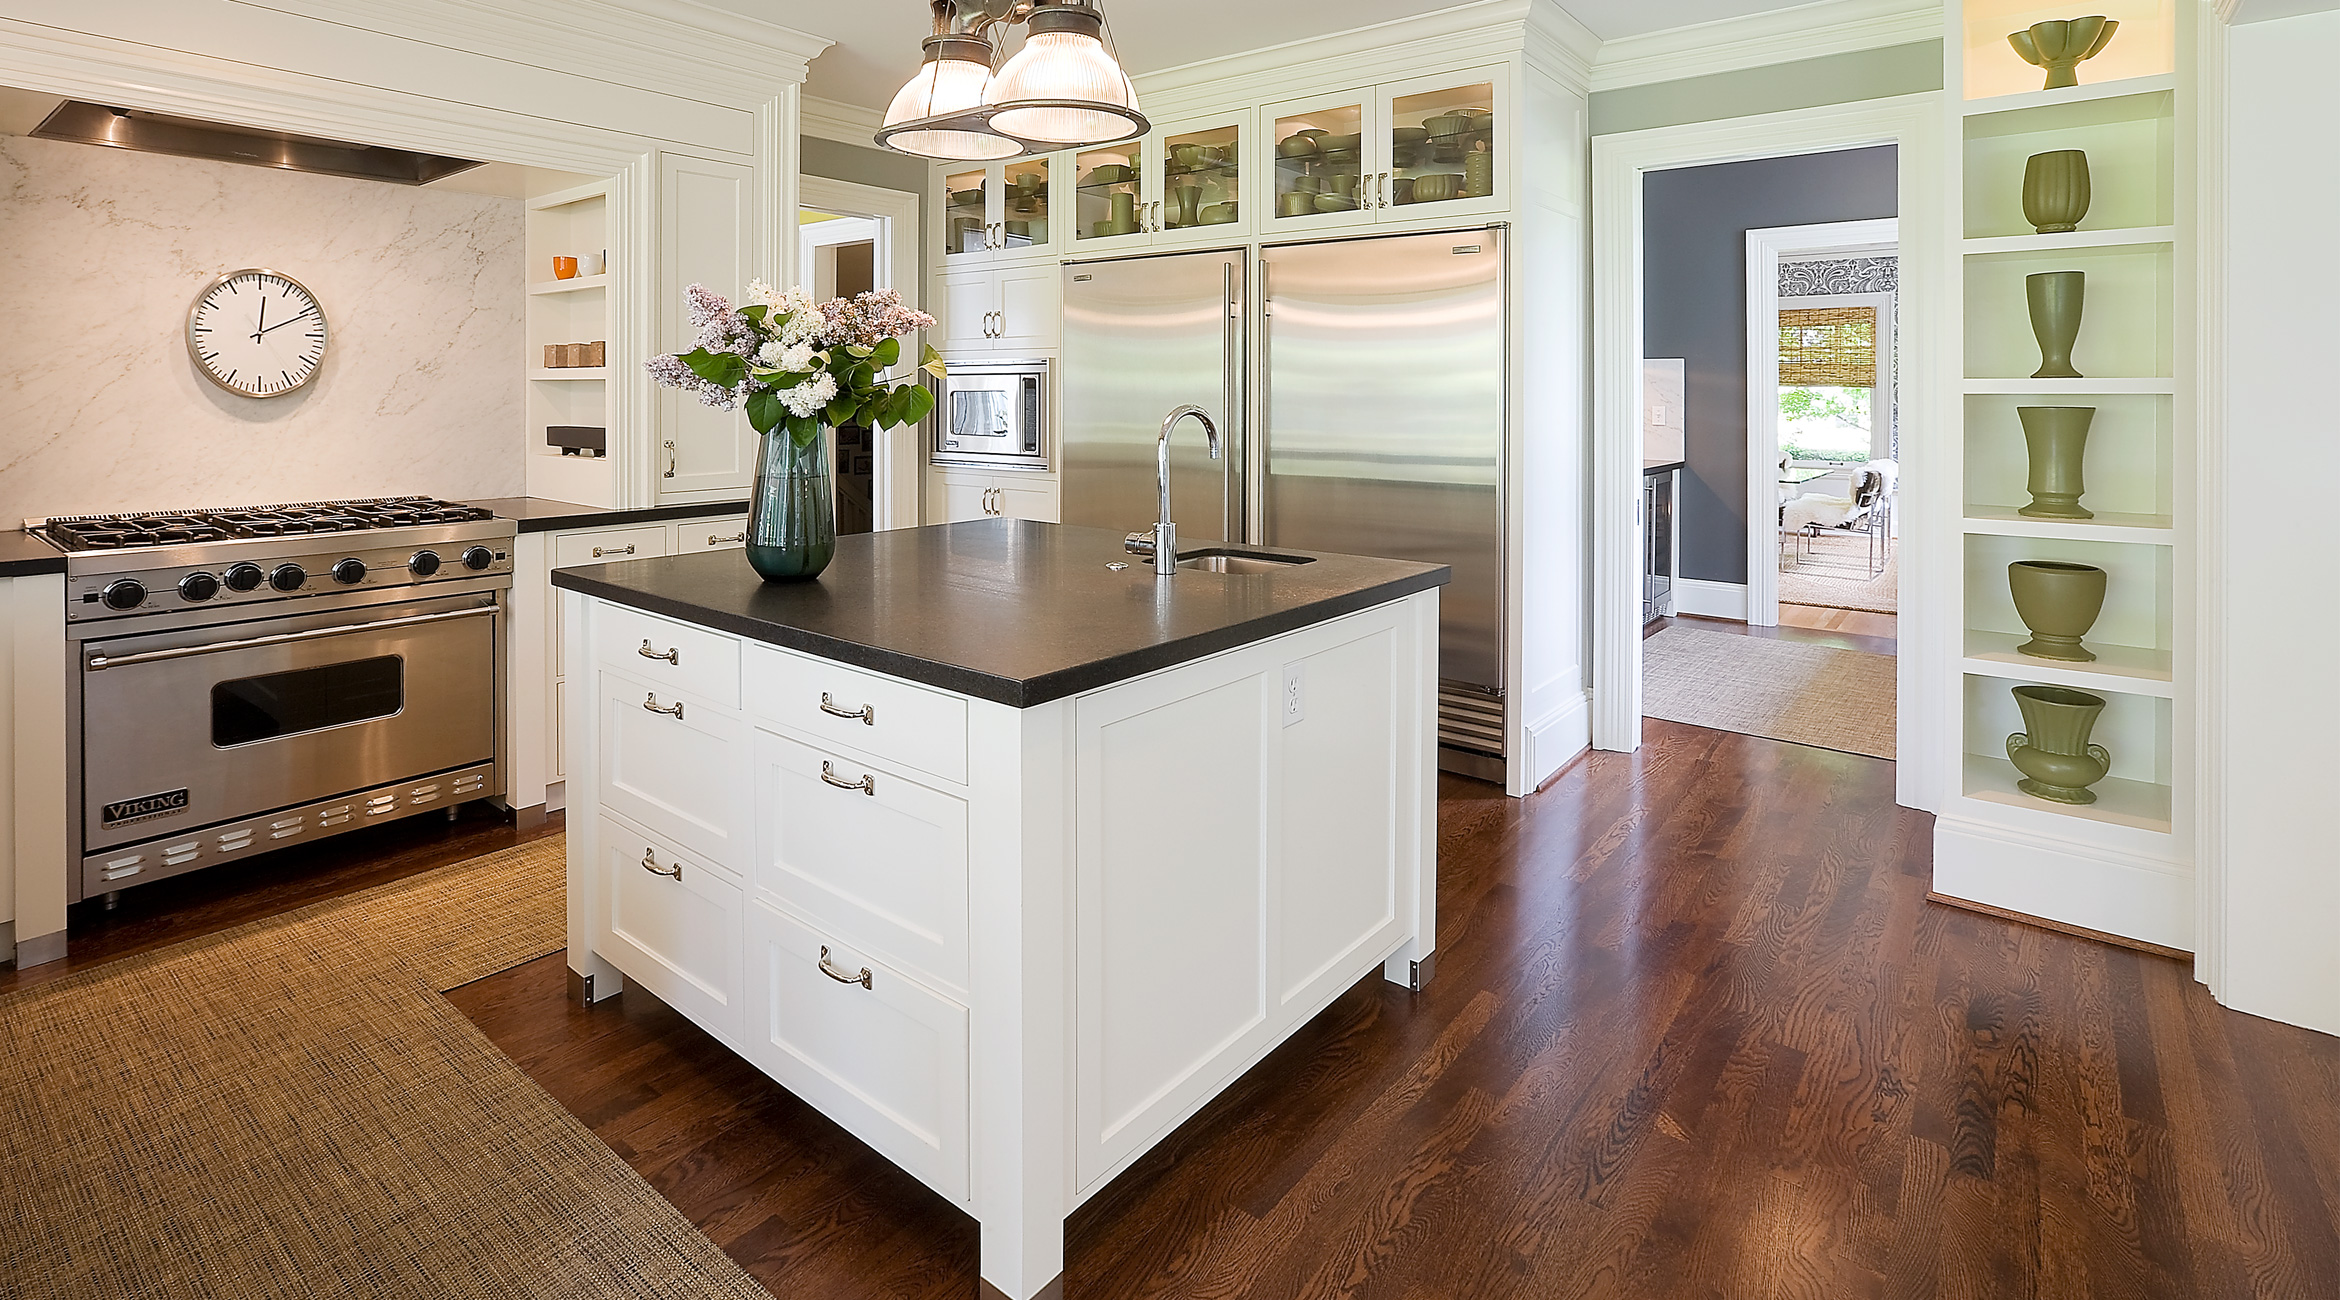 Fullsize Of Small Kitchen Islands With Drawers